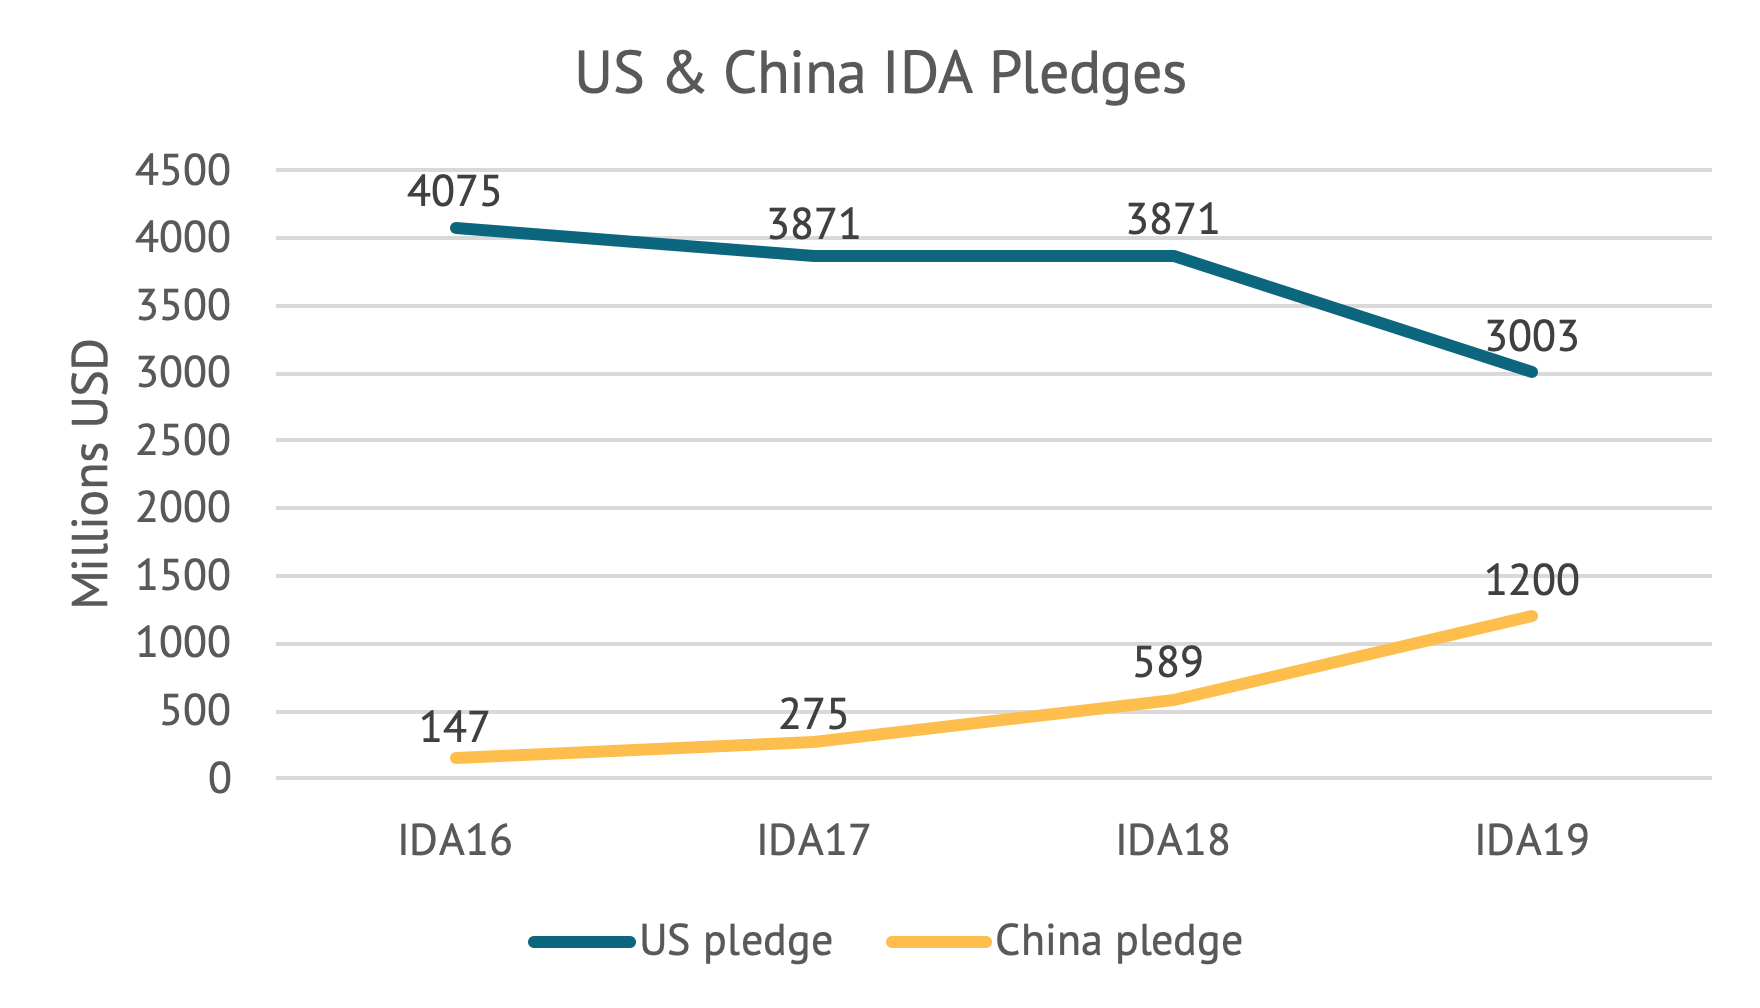 Chart showing falling US pledges to IDA and rising Chinese pledges to IDA